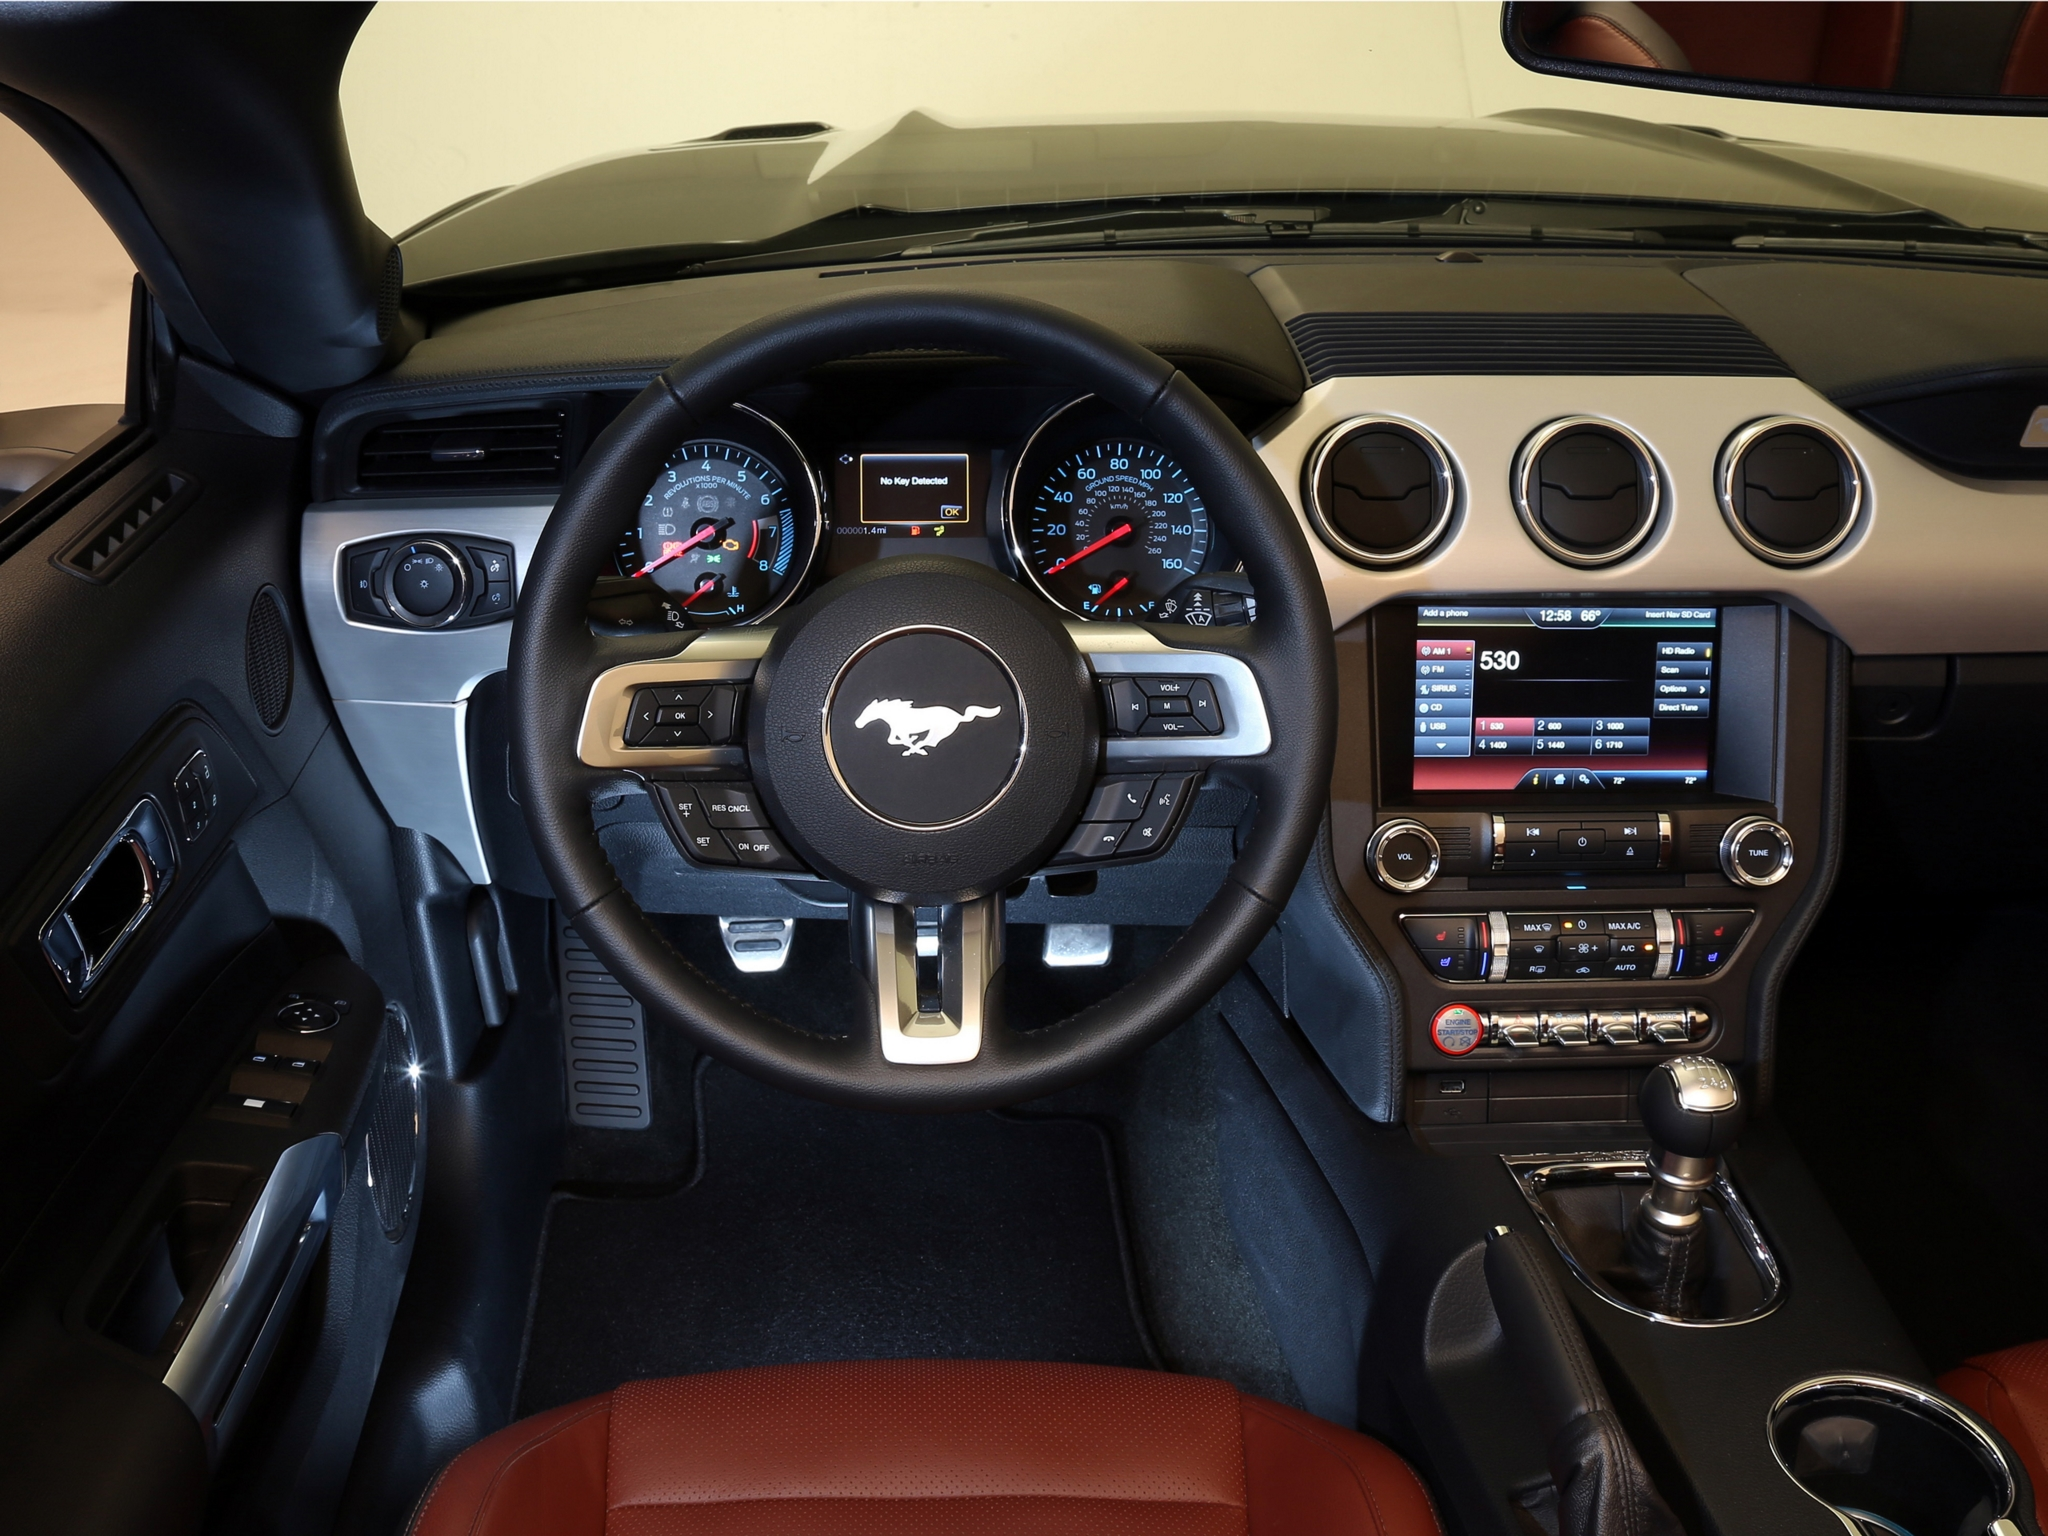 2014 ford mustang g t convertible muscle interior f wallpaper 2048x1536 187967 wallpaperup